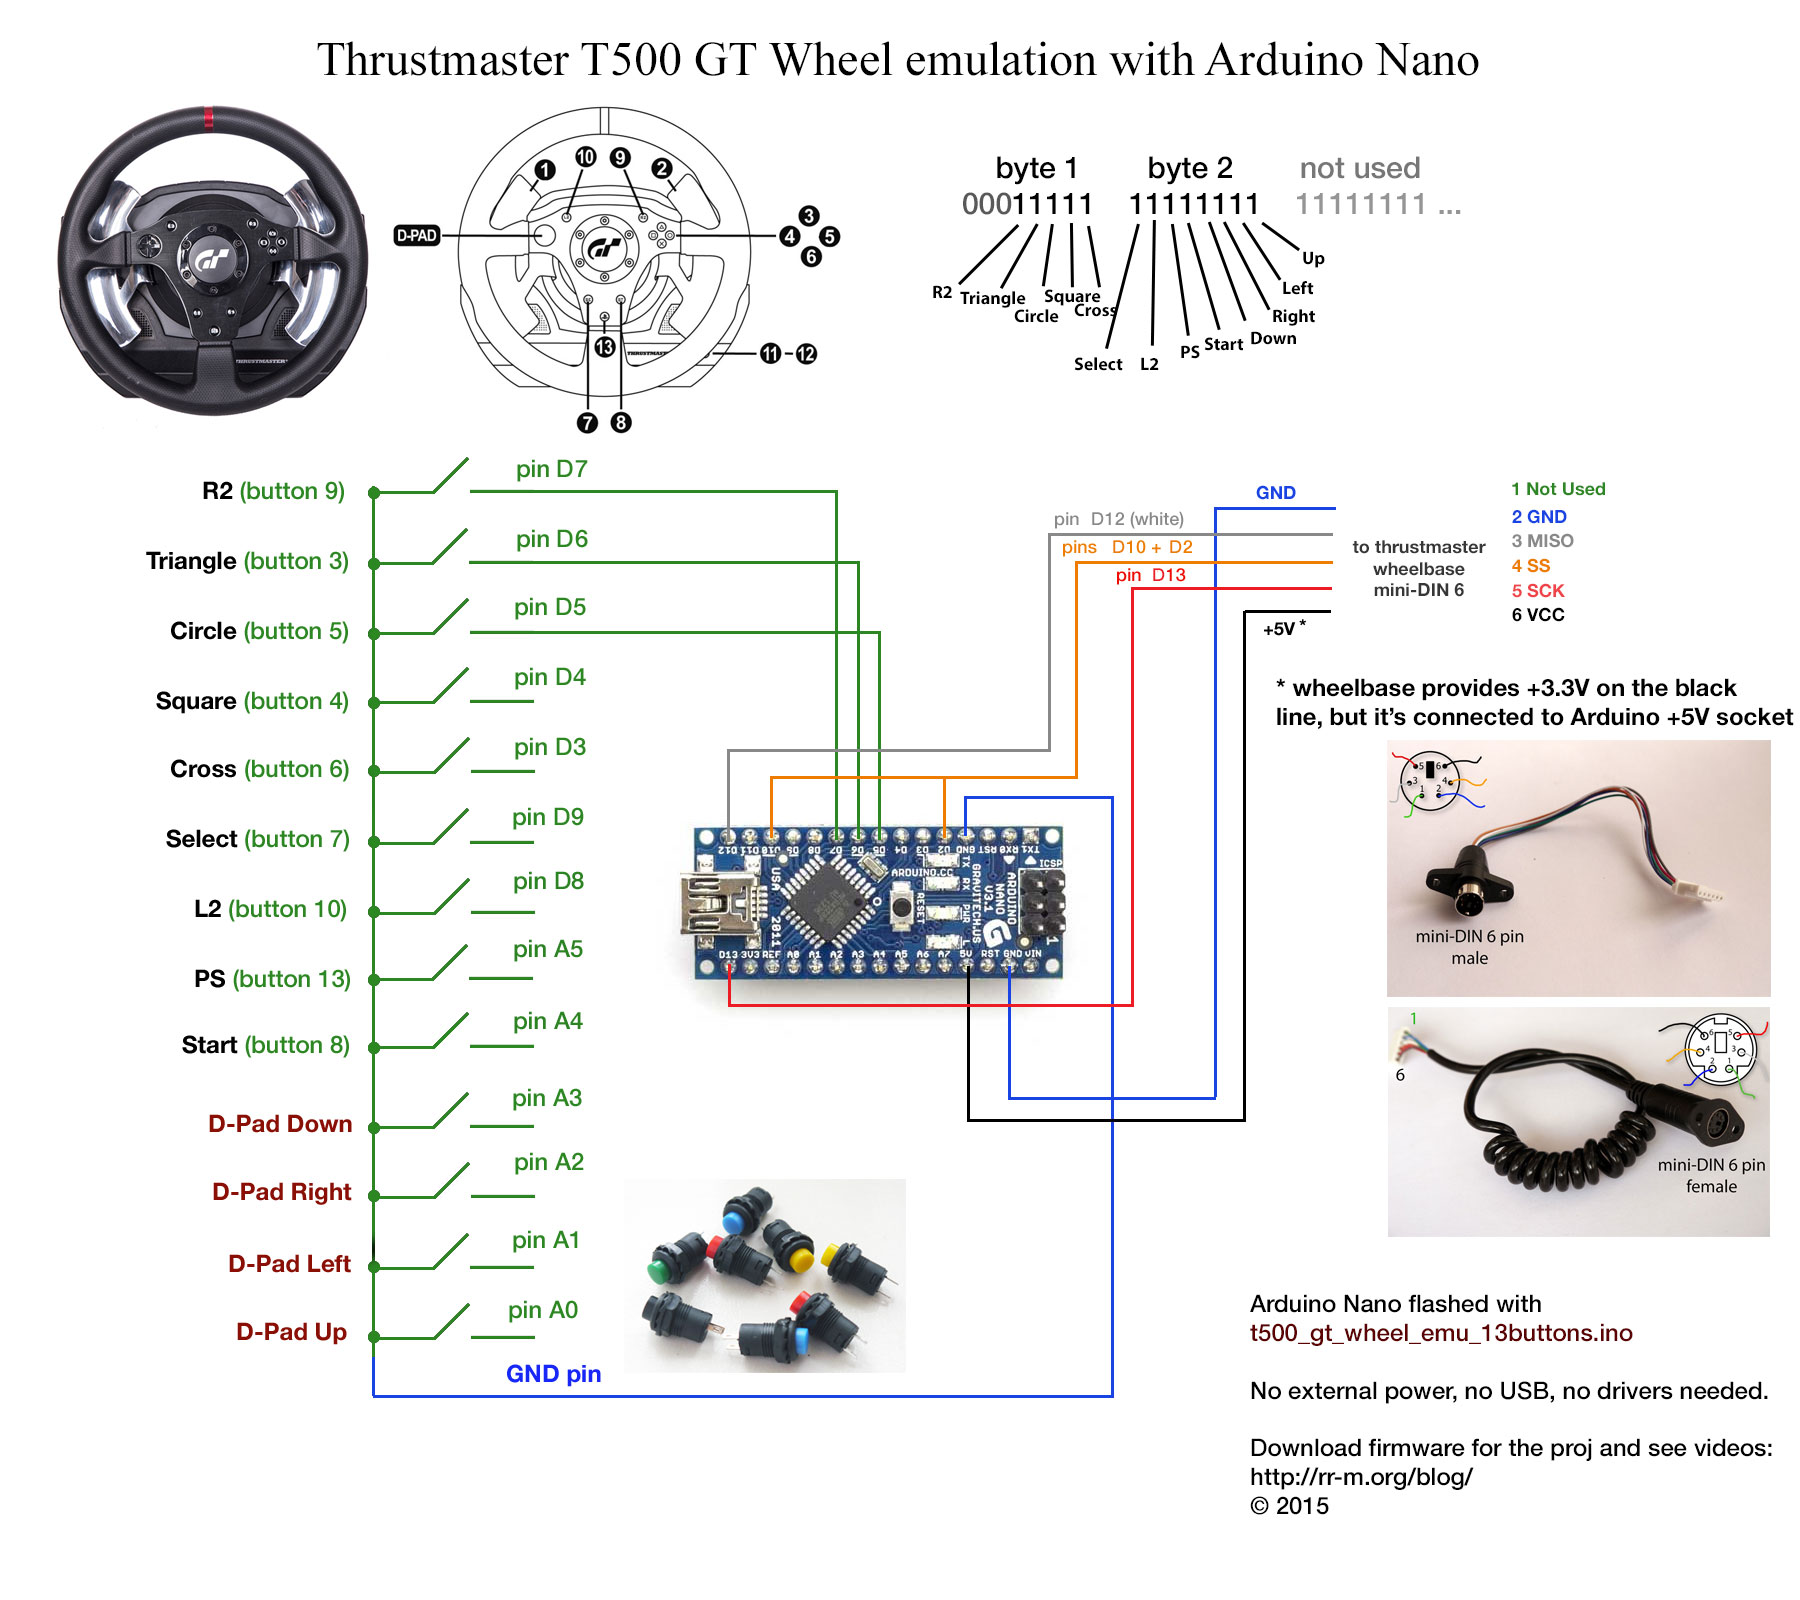 Wiring For Push Button Electrical Diagram Start Stop Emulating Thrustmaster T500 Gt Wheel Electronics With Wire Arduino